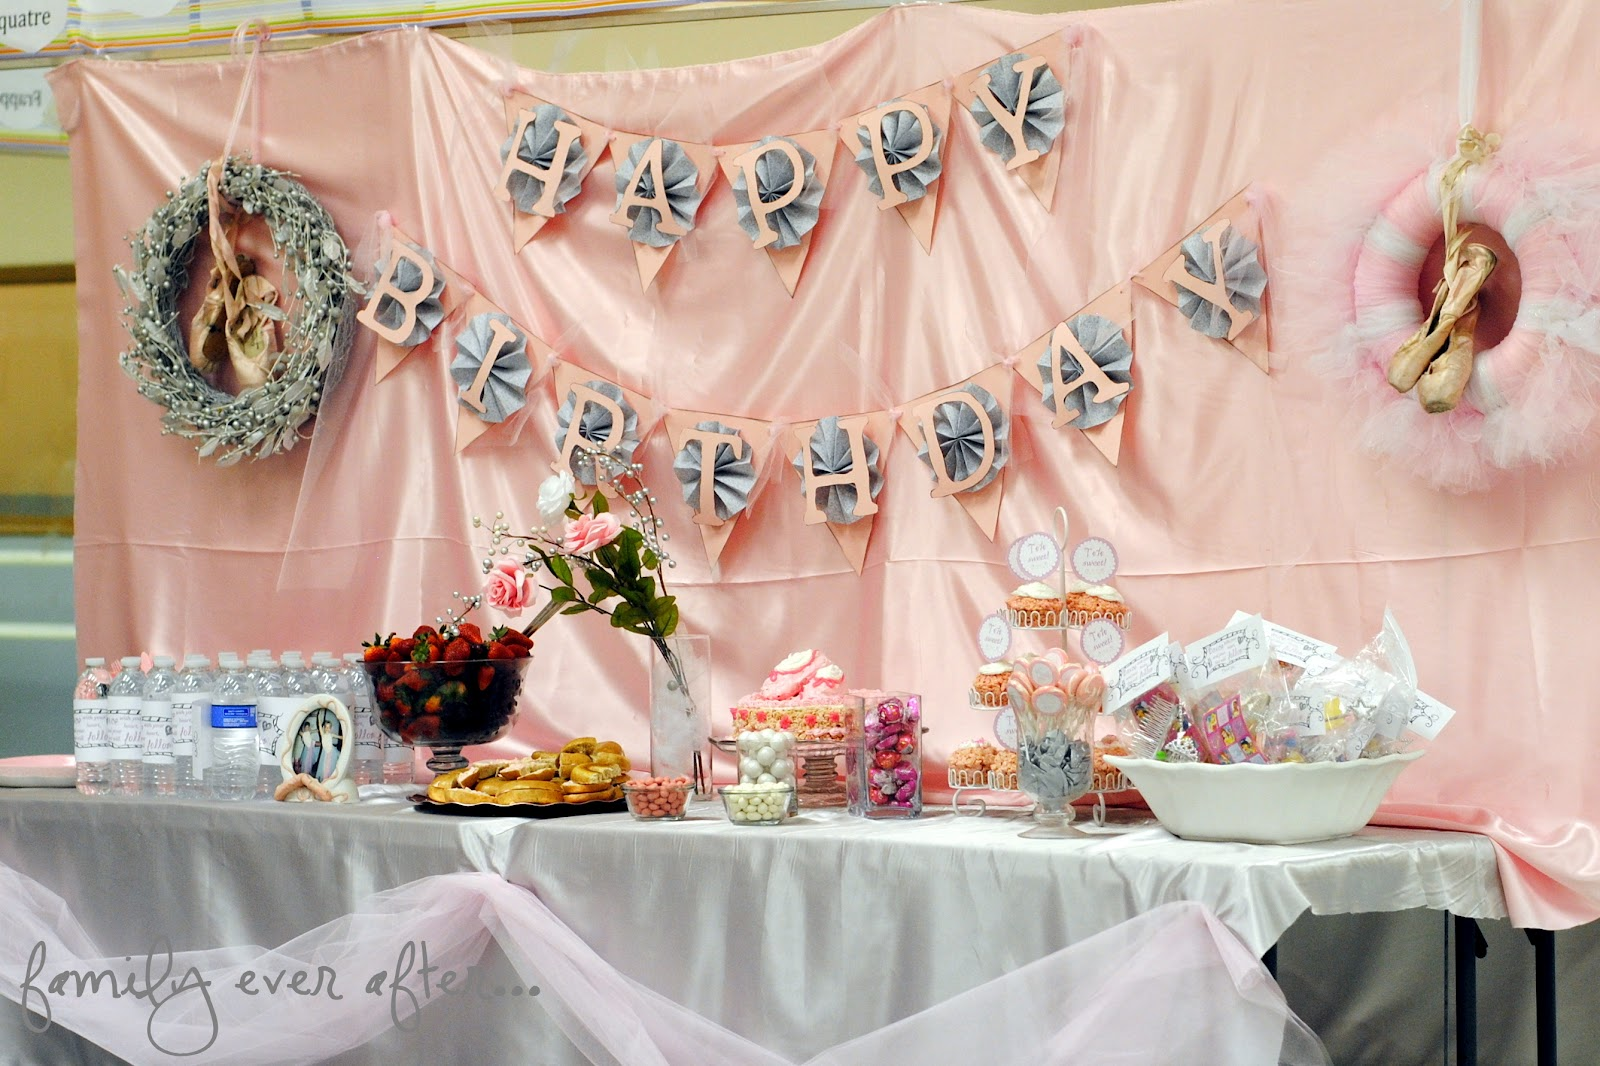 Throw A Ballet Dance Party With Tutu Wreath Cake Free Printables And More